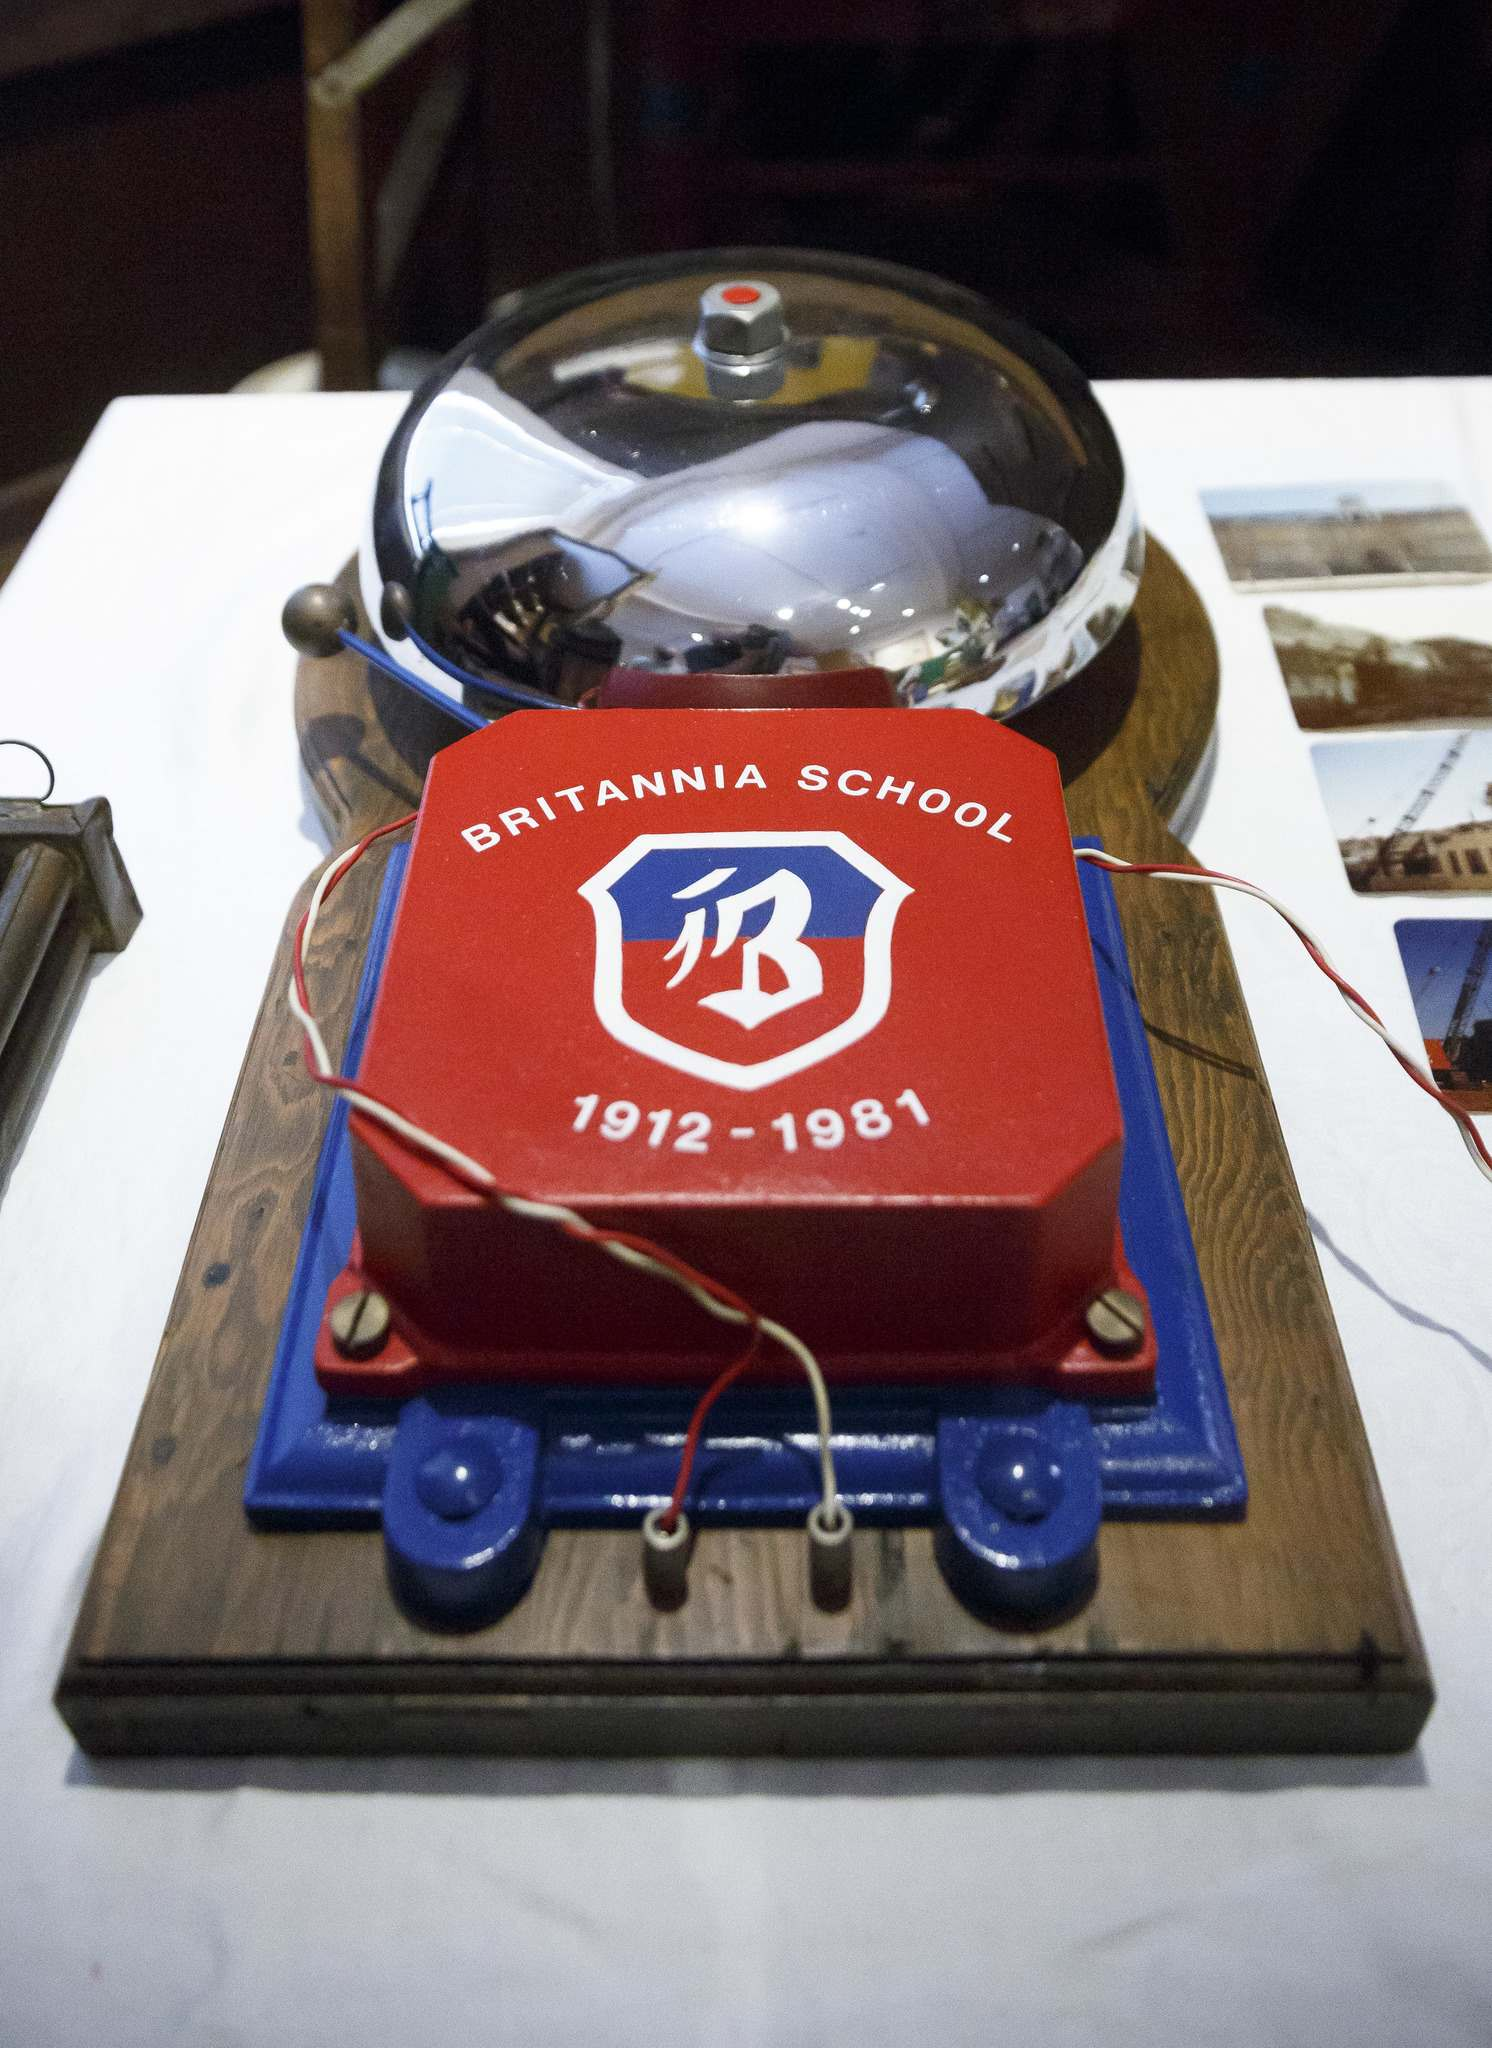 A bell from the Britannia School, which was one of the only things recovered after a fire destroyed the school in 1981. (Mike Deal / Winnipeg Free Press)</p>